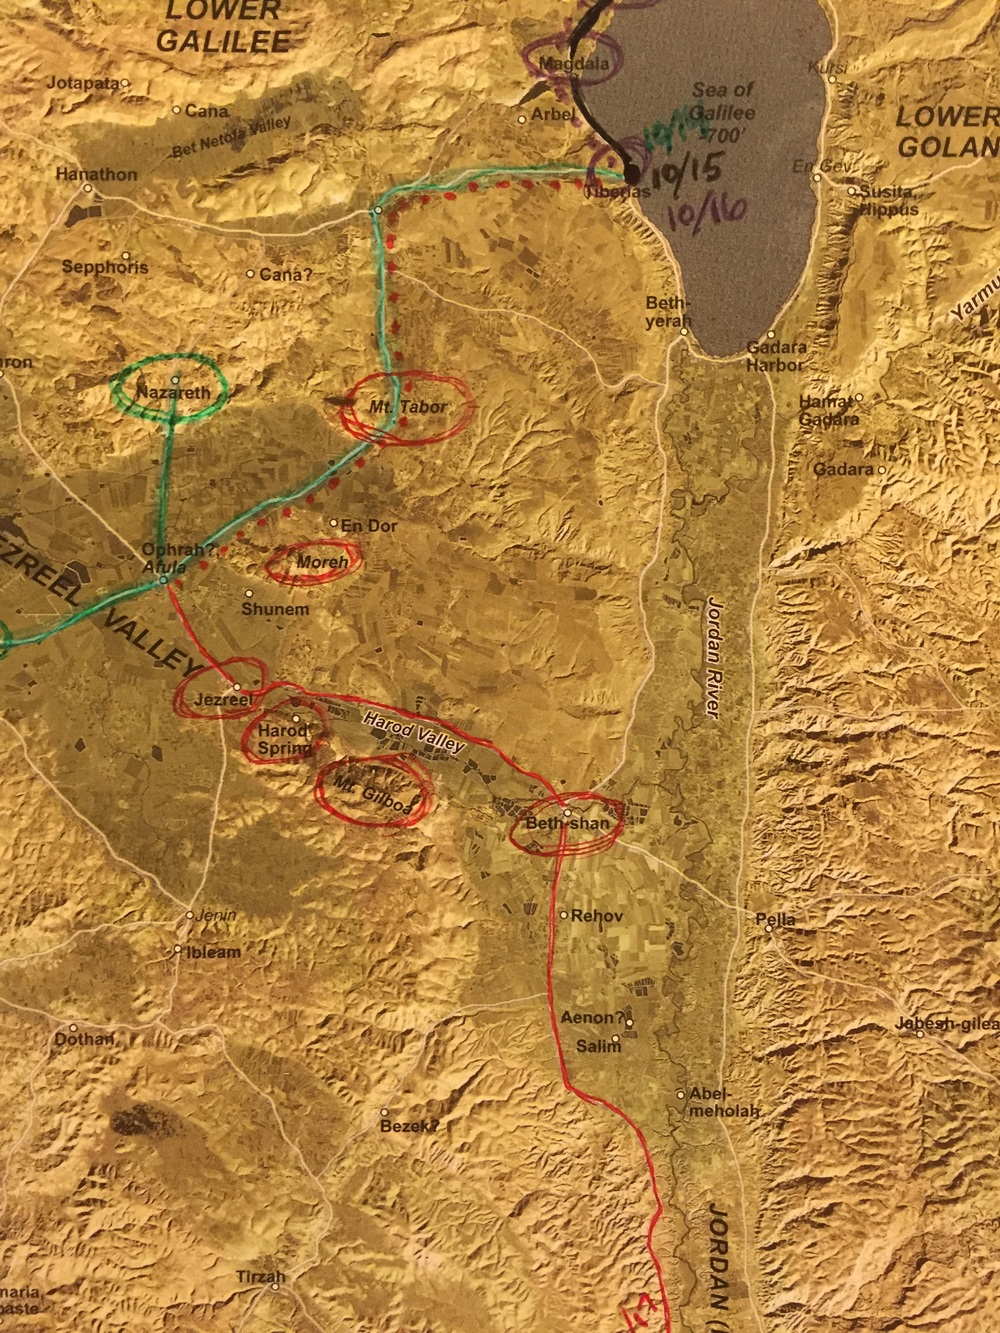 The locations we stopped at or saw. From Jezreel we attempted to see Mt. Tabor, the hill or Moreh & Mt. Gilboa.